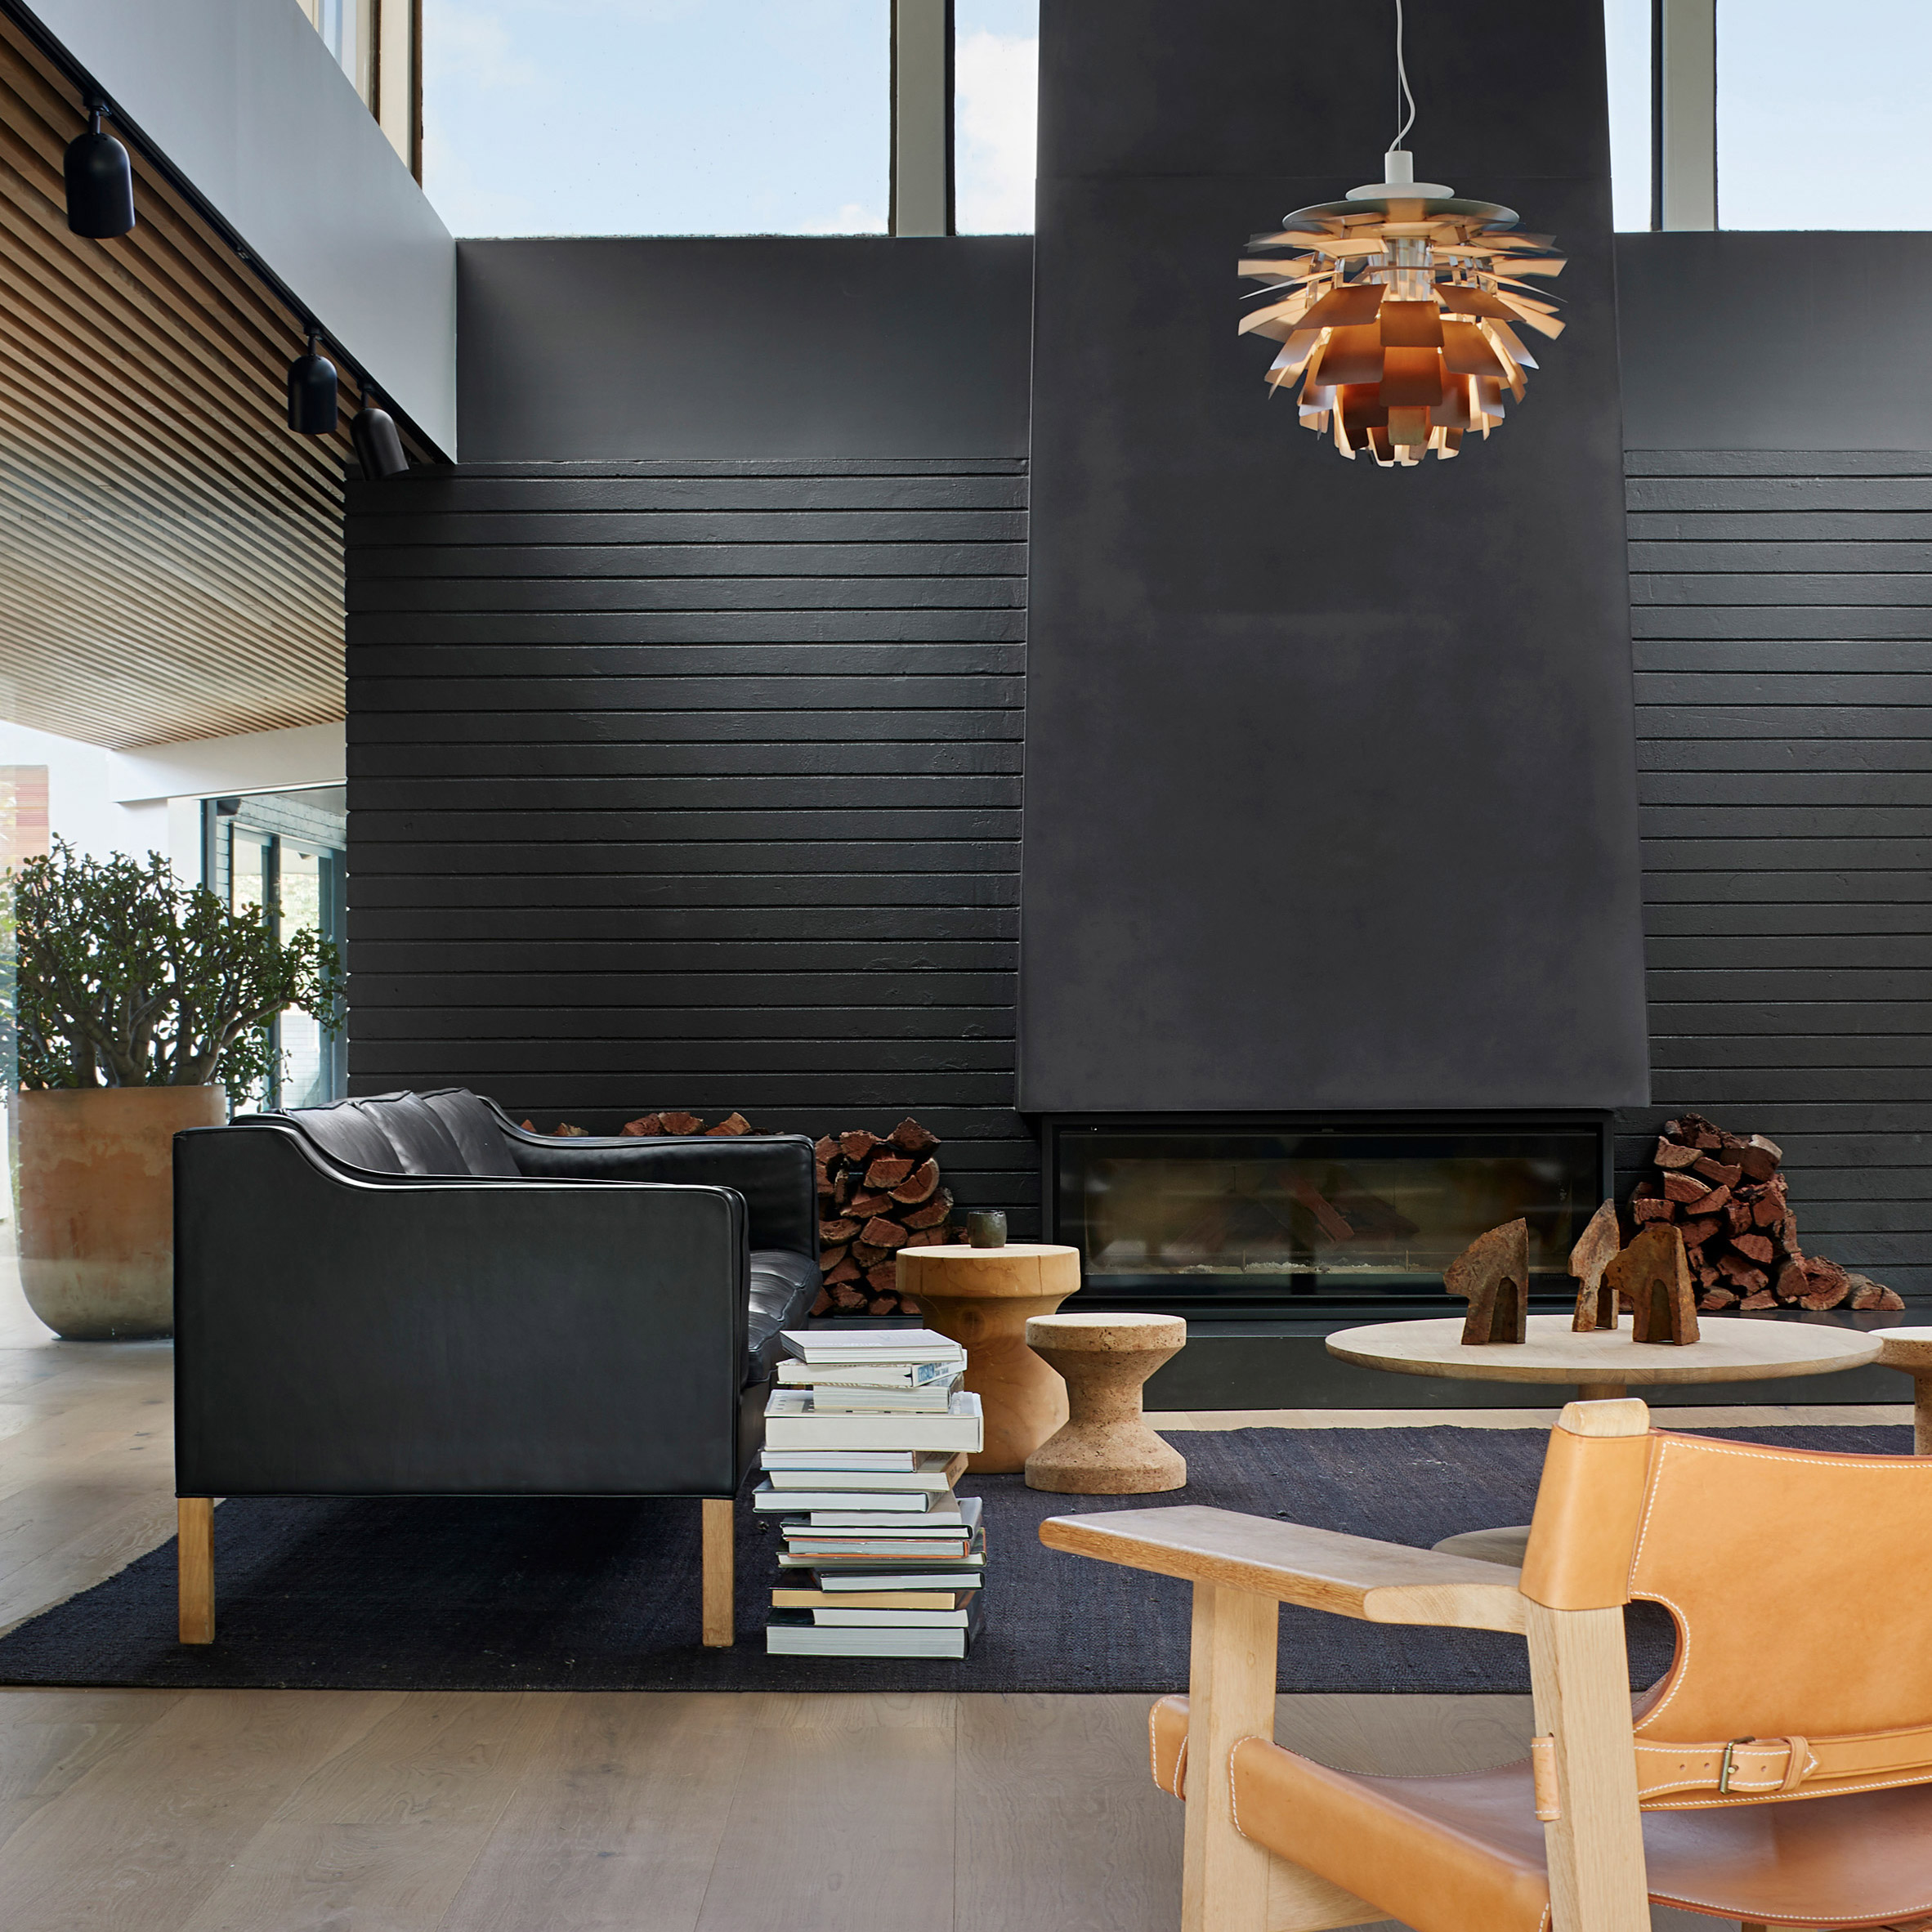 Living room with black fireplace